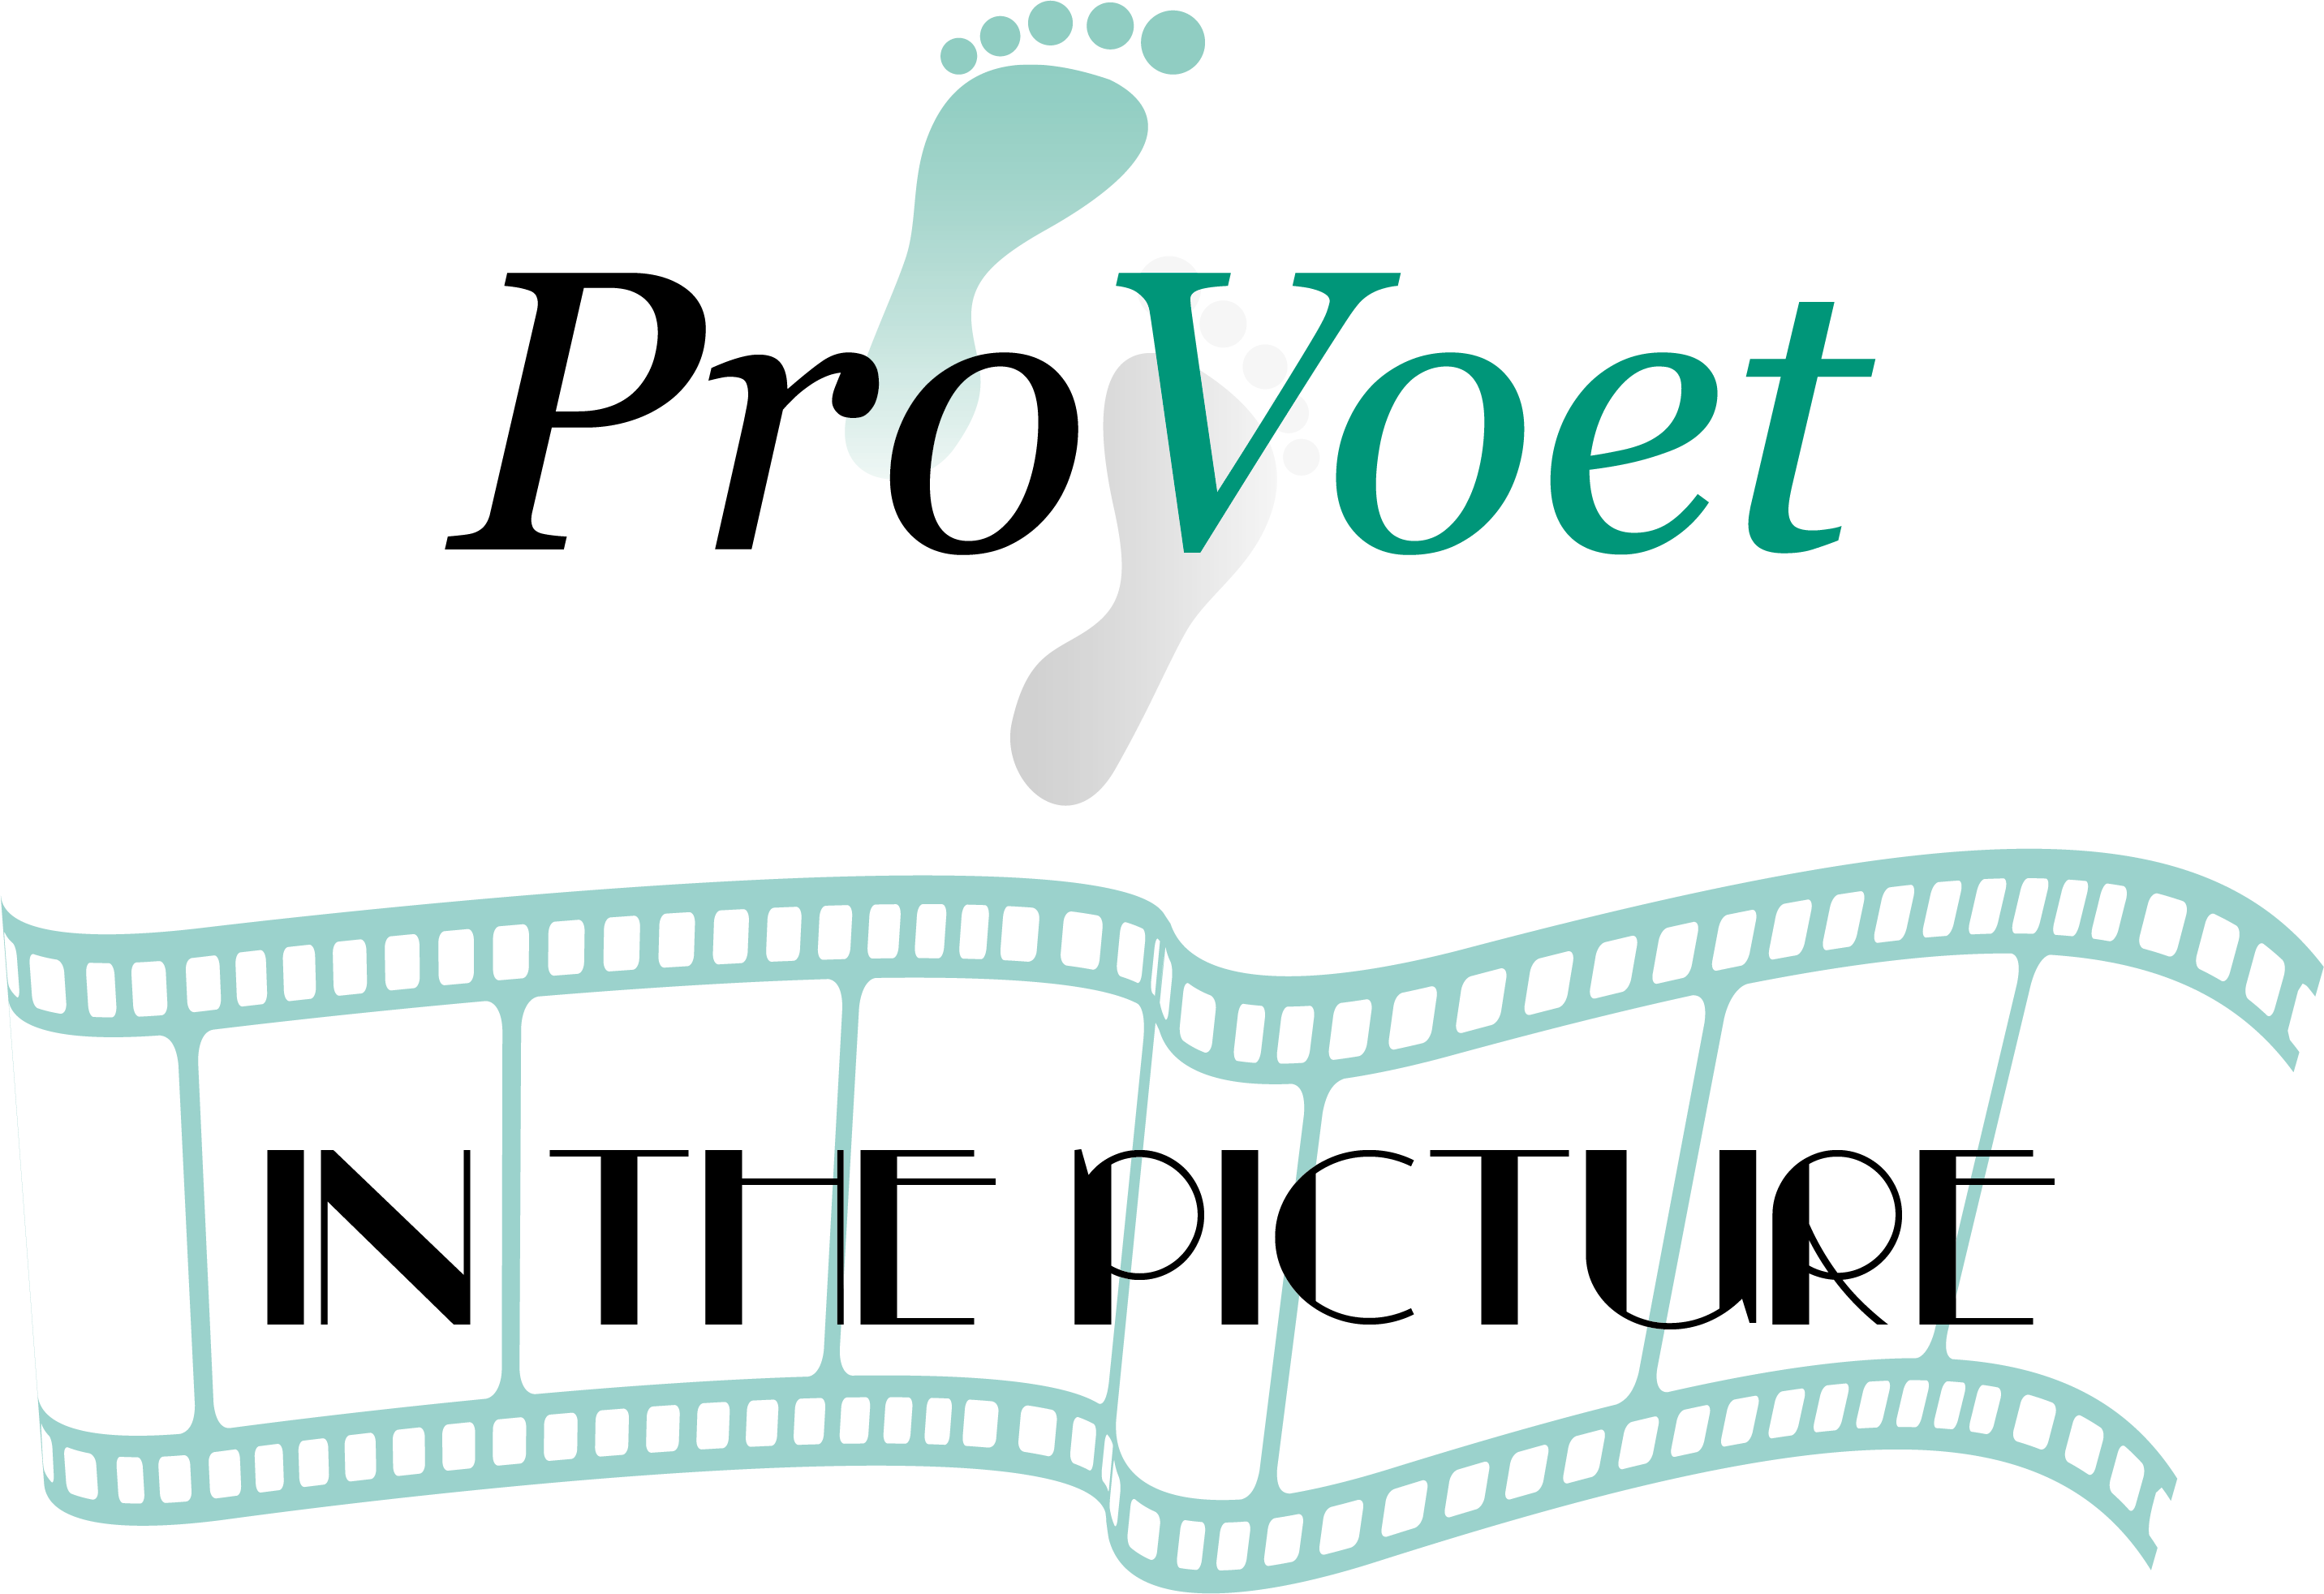 ProVoet in the Picture